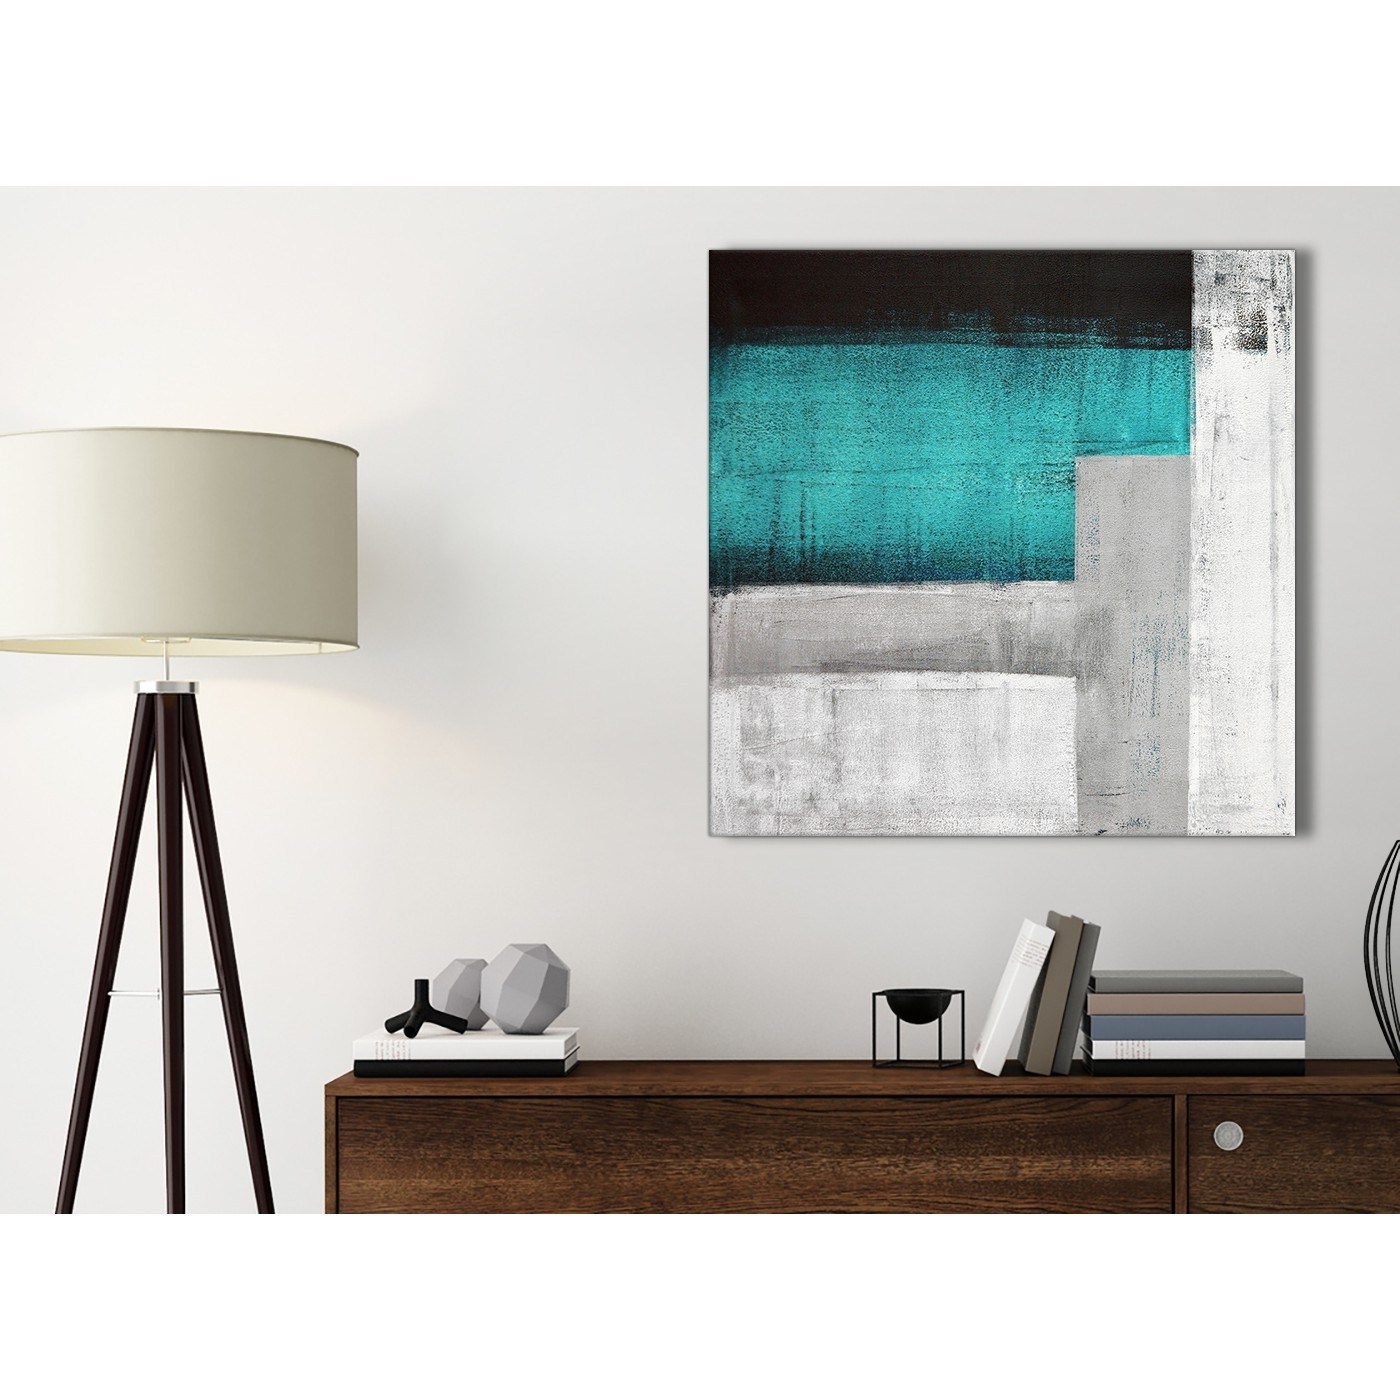 Teal Turquoise Grey Painting Bathroom Canvas Wall Art Accessories Pertaining To Most Up To Date Teal And Brown Wall Art (View 17 of 20)